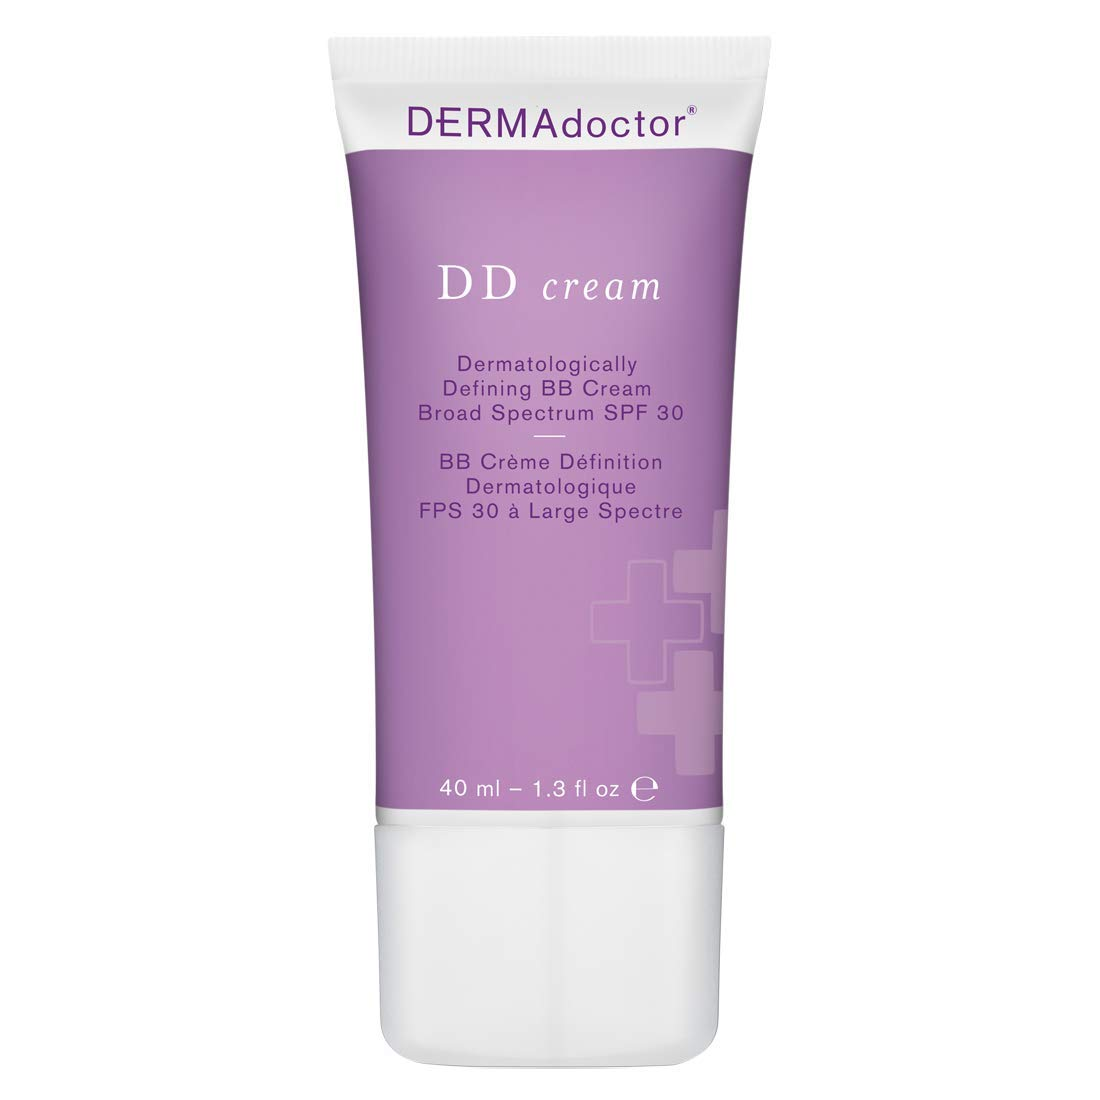 DERMAdoctor DD Cream Dermatologically Defining BB Cream Broad Spectrum SPF 30, 1.3 Fl Oz